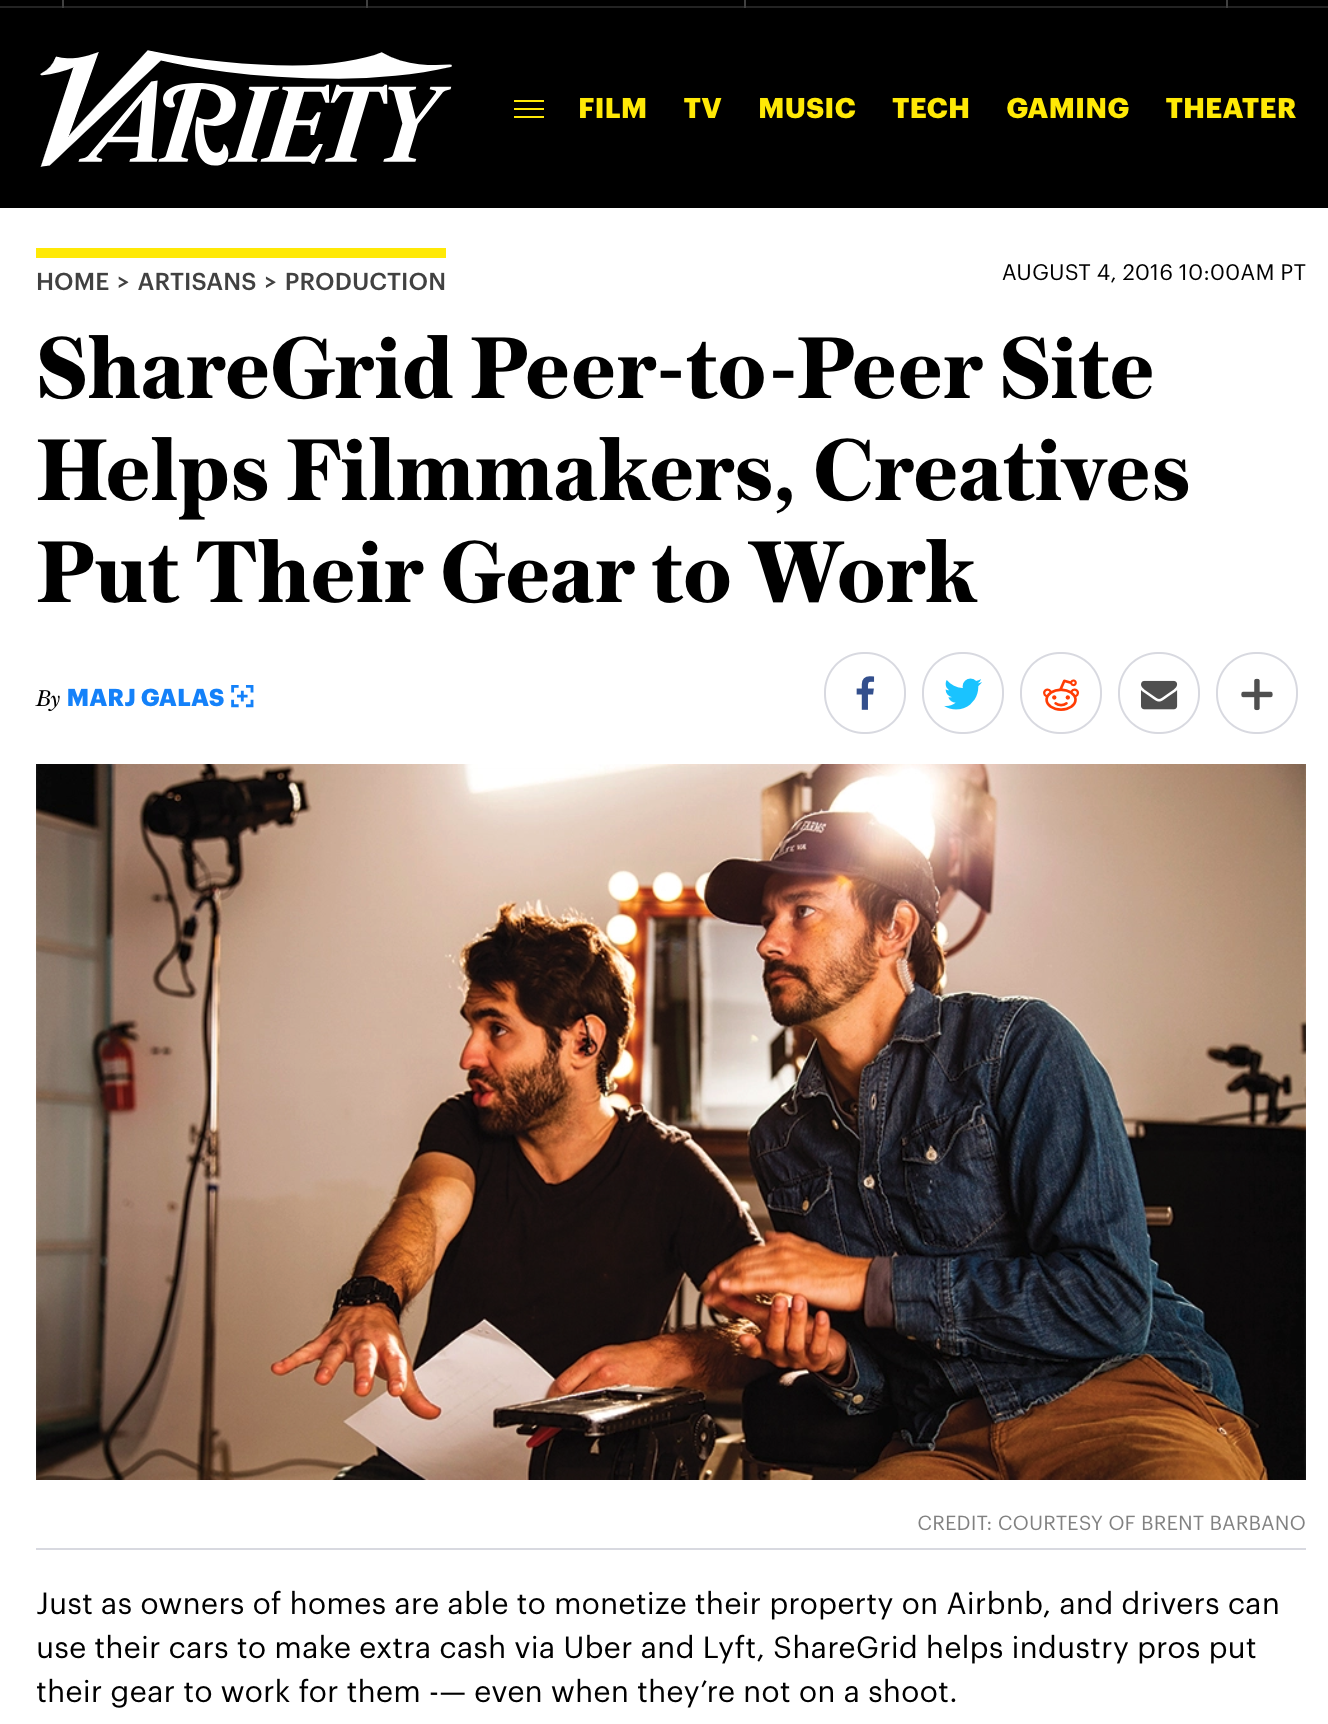 Variety - ShareGrid Peer-to-Peer Site Helps Filmmakers, Creatives Put Their Gear to Work - Just as owners of homes are able to monetize their property on Airbnb, and drivers can use their cars to make extra cash via Uber and Lyft, ShareGrid helps industry pros put their gear to work for them -— even when they're not on a shoot.How it started: ShareGrid, a peer-to-peer gear marketplace for filmmakers and creatives, is the brainchild of founders Brent Barbano, Arash Shiva, and Marius Ciocirlan — all creatives themselves. In 2013, Barbano, a DP, was working on a documentary that highlighted the sharing economy when the inspiration hit him to create a sharing network for filmmakers. He connected with product designers Shiva and Ciocirlan, and the trio began to develop the concept. In advance of launching the service, they posted an ad on Facebook that resultedin 3,000 sign-ups.